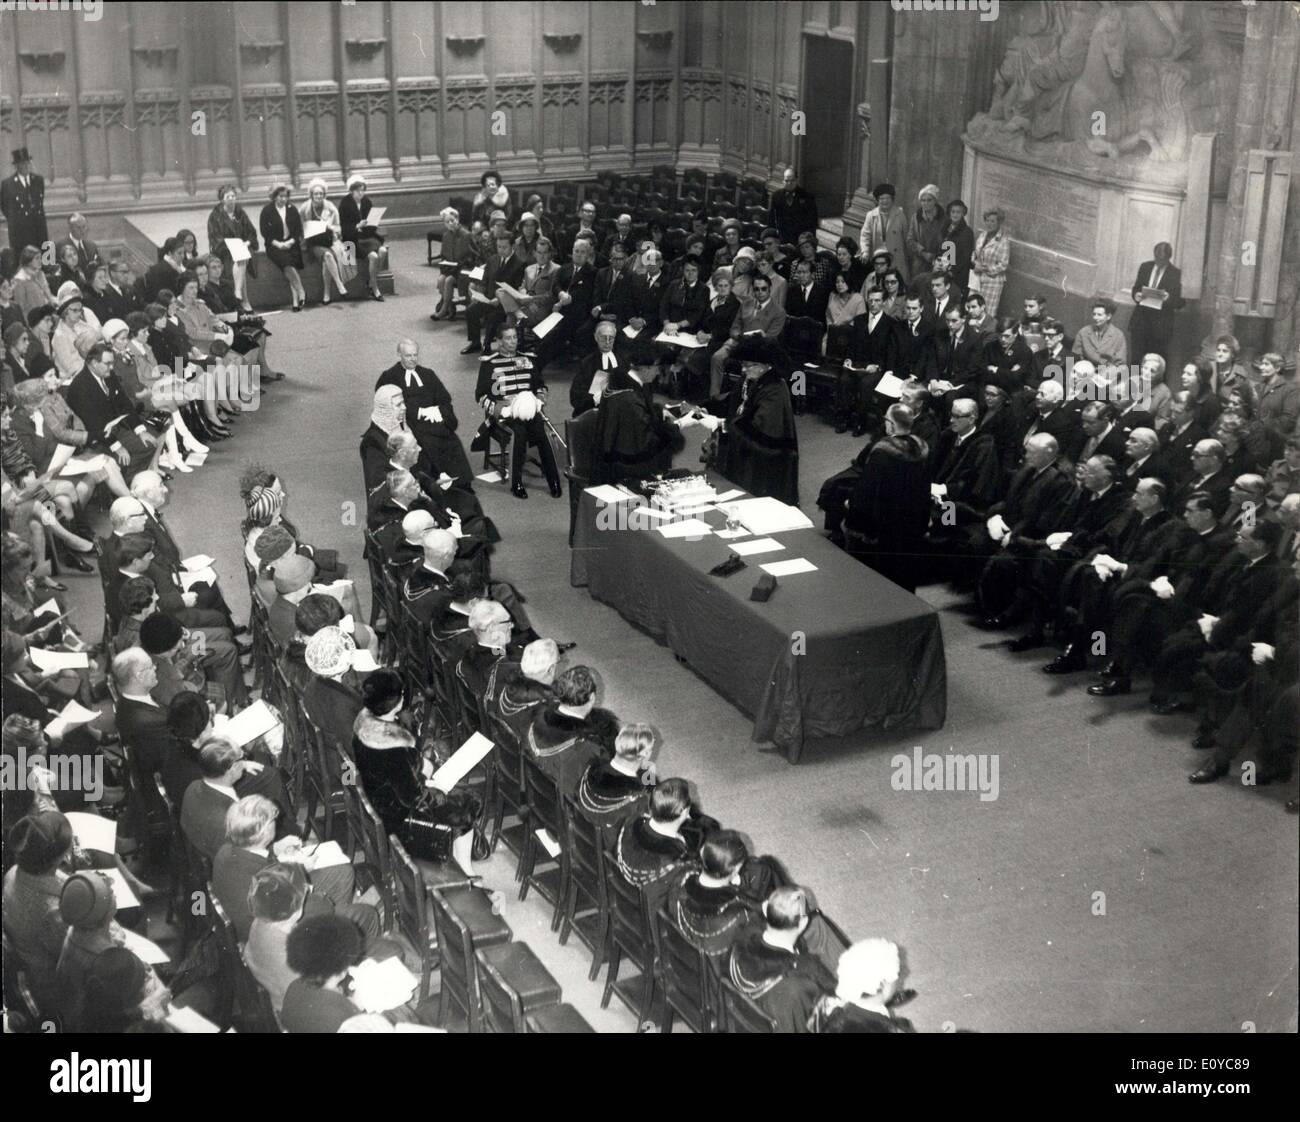 Nov. 07, 1969 - Admission Ceremony of Lord Mayor of London - Stock Image